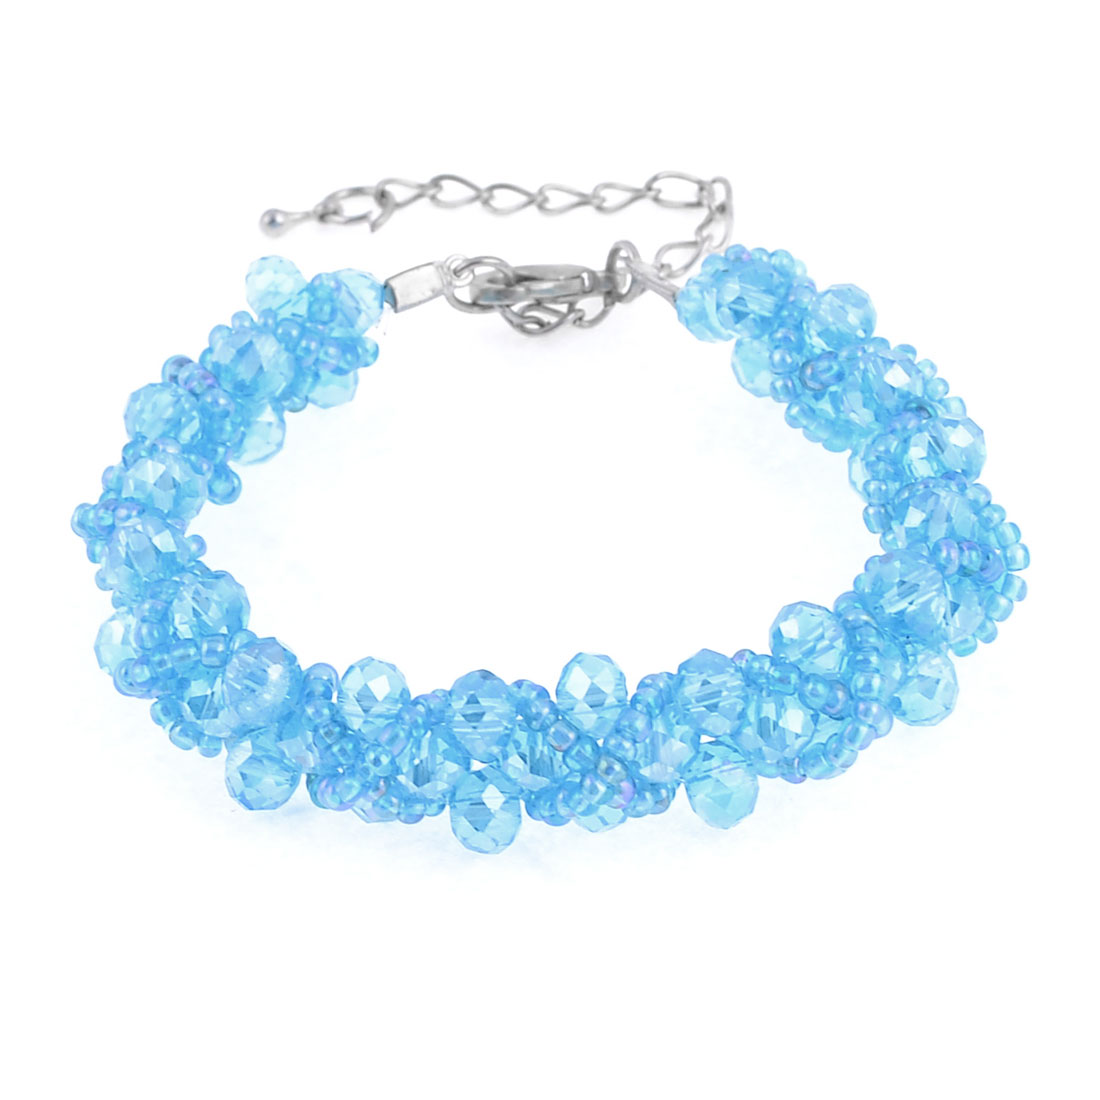 Lady Plastic Shiny Round Beaded Faceted Crystal Bracelet Sky Blue